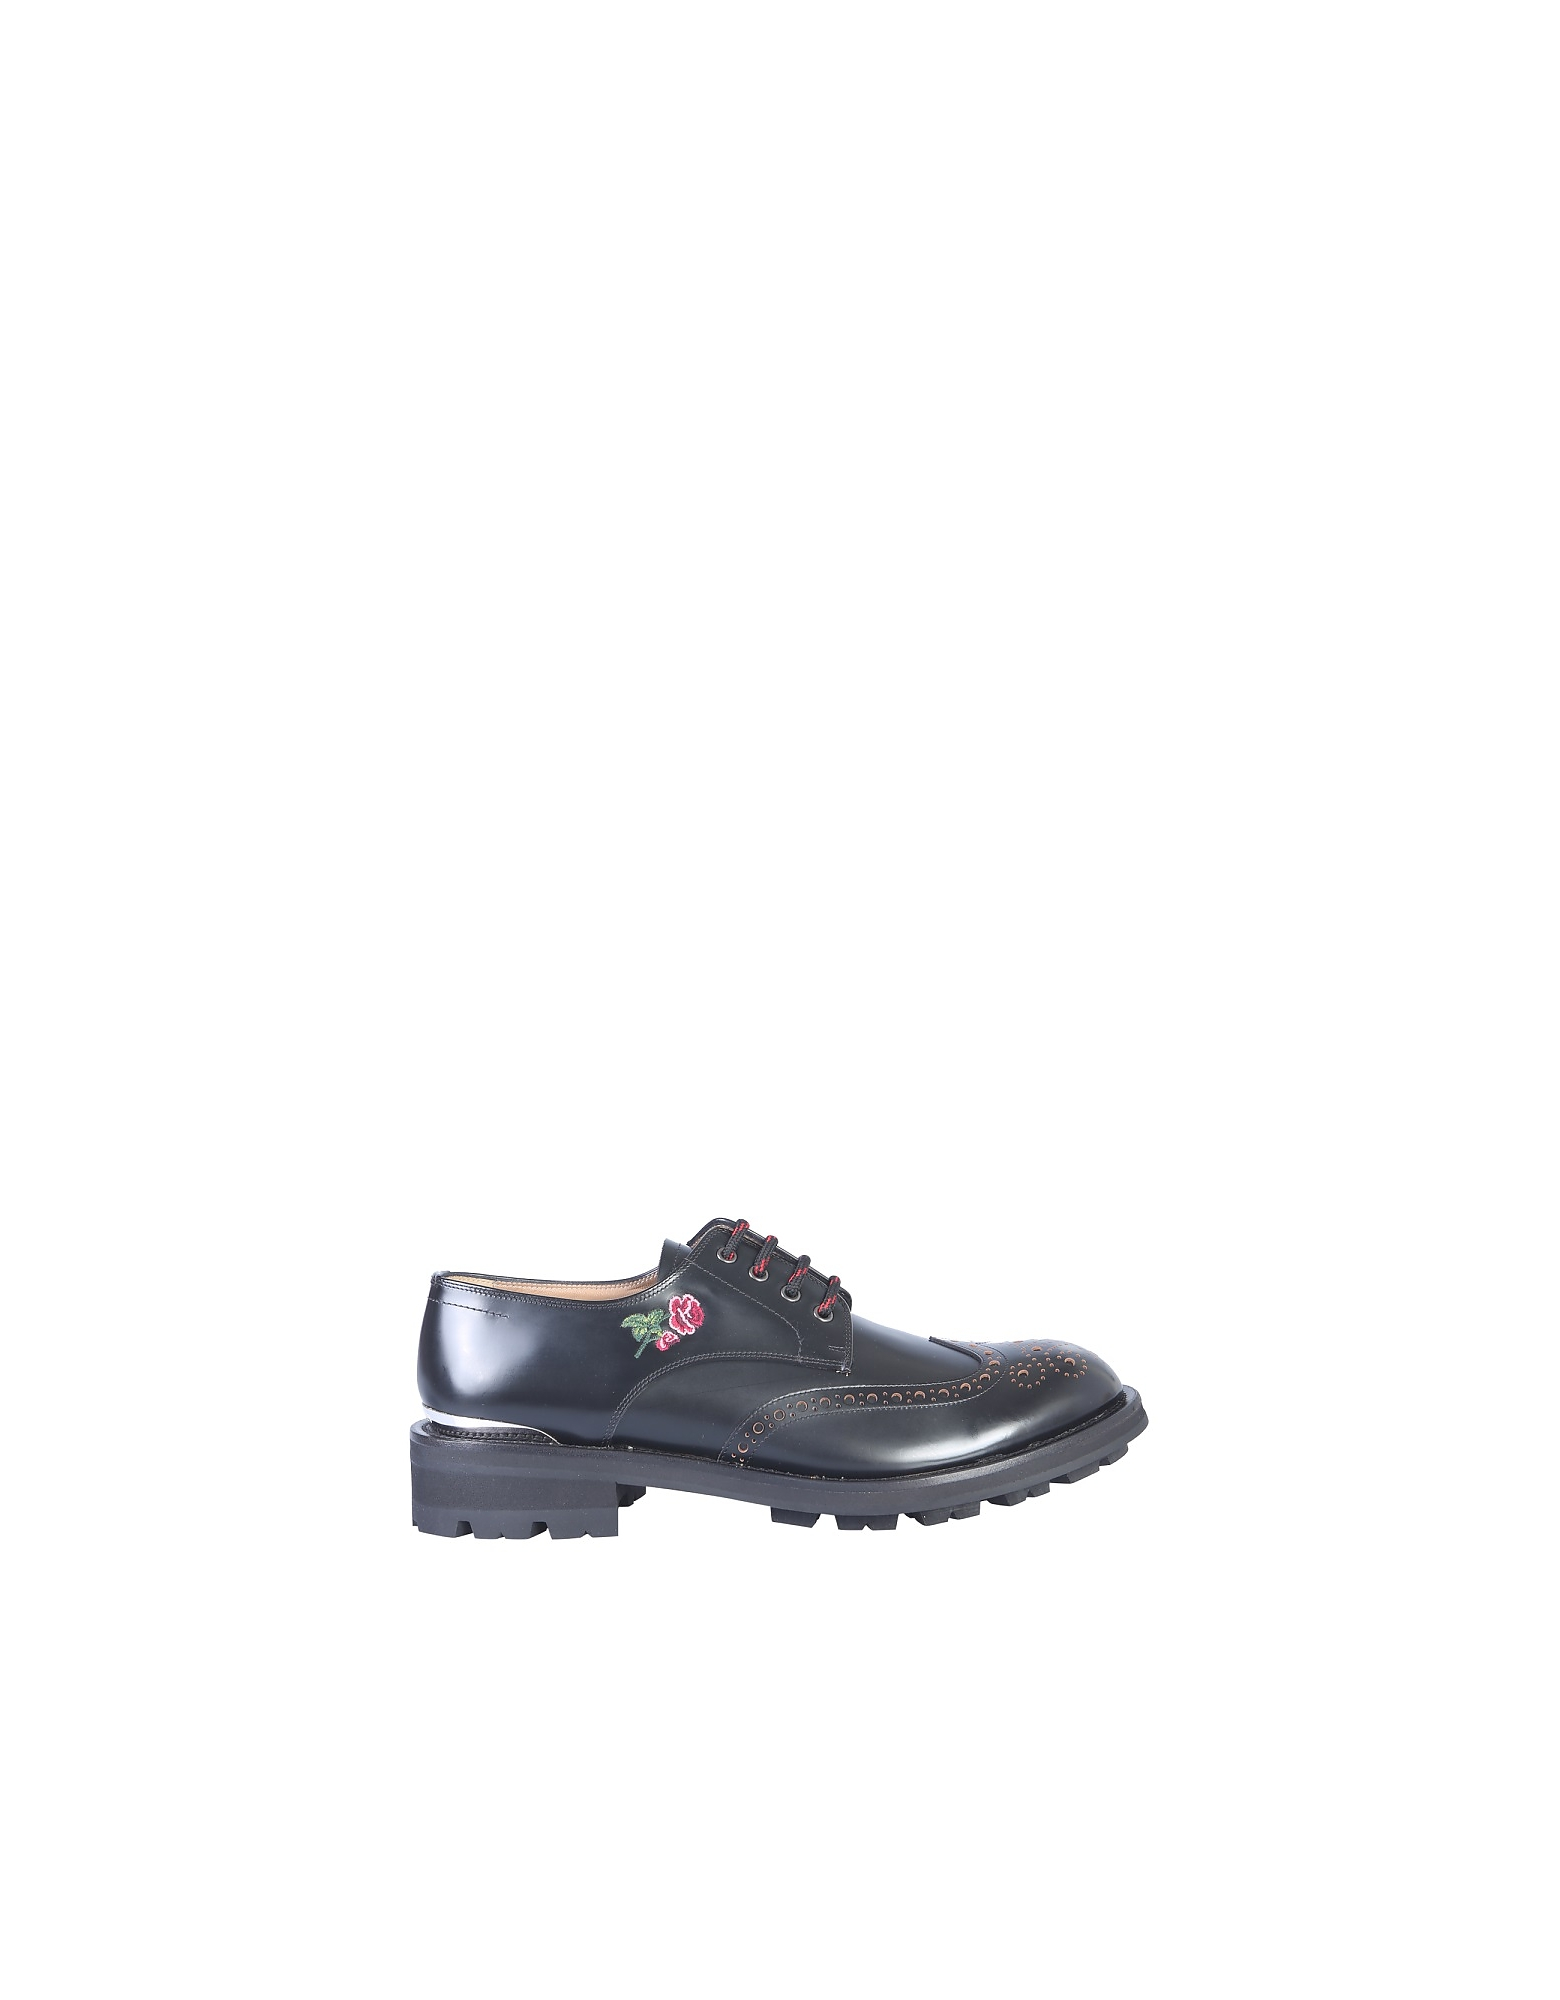 Alexander McQueen Designer Shoes, Embroidered Black Leather Lace-Up Men's Derby Shoes